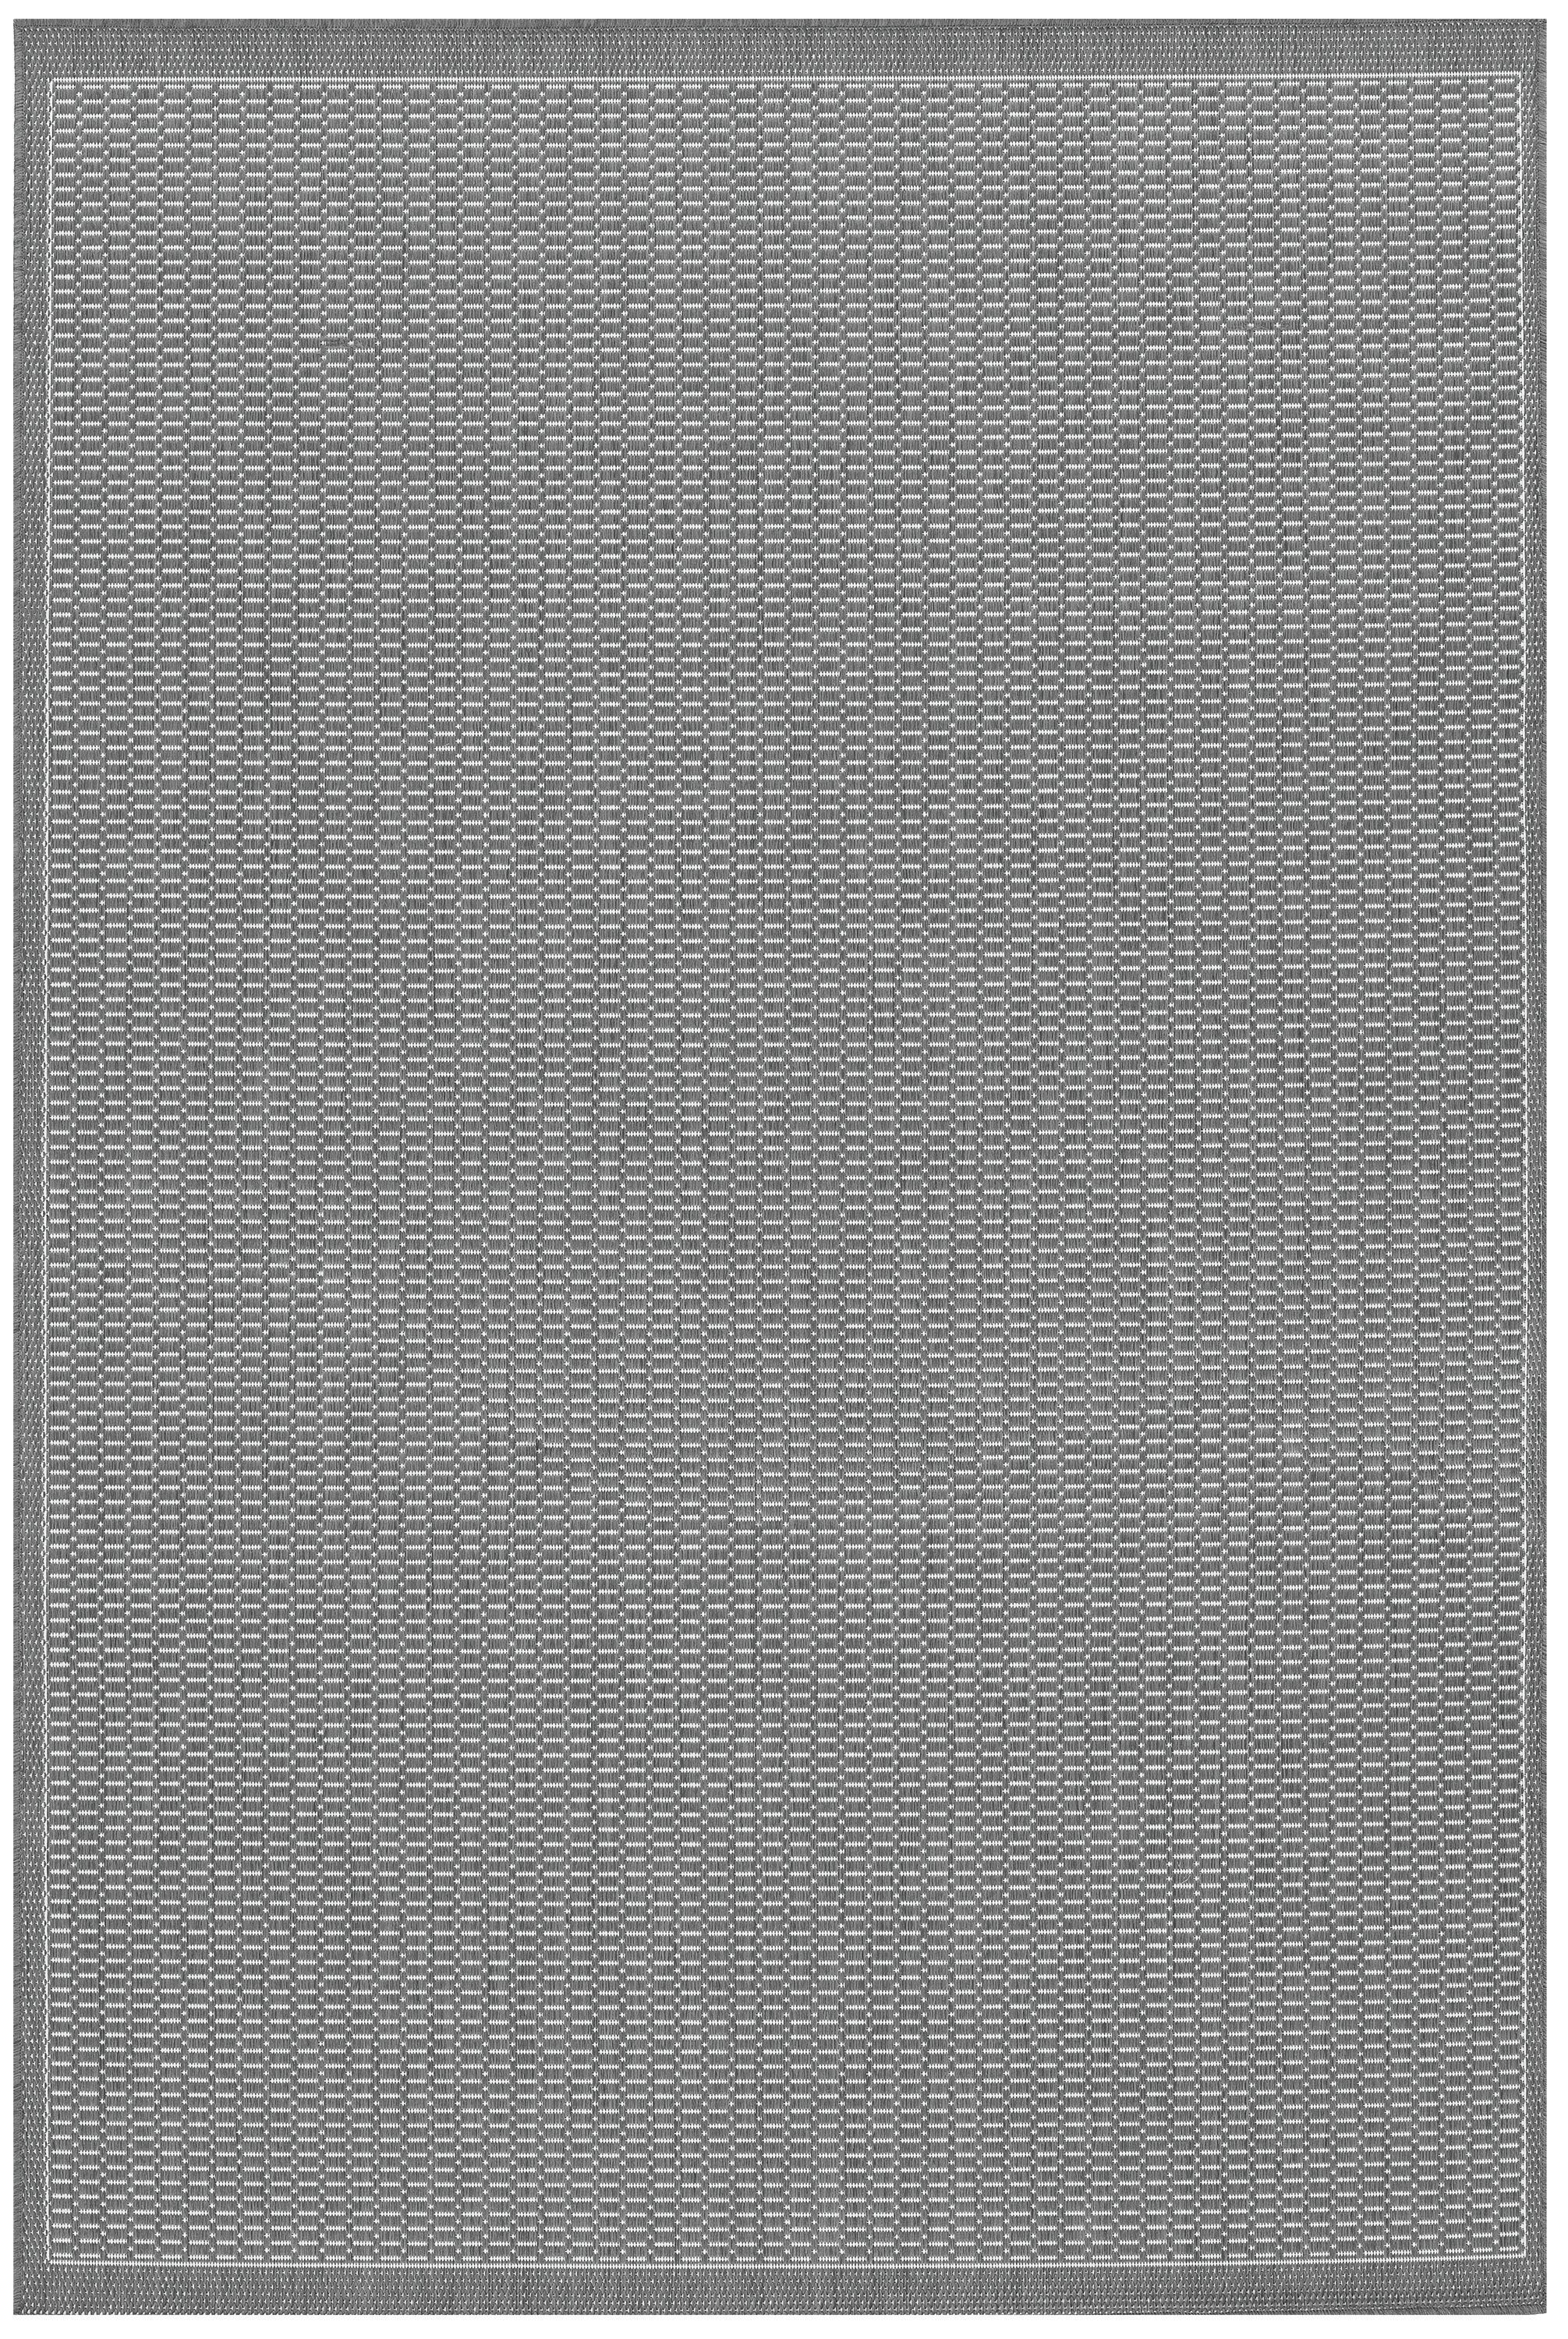 Ariadne Saddle Stitch Gray Indoor/Outdoor Area Rug Rug Size: Rectangle 8'6